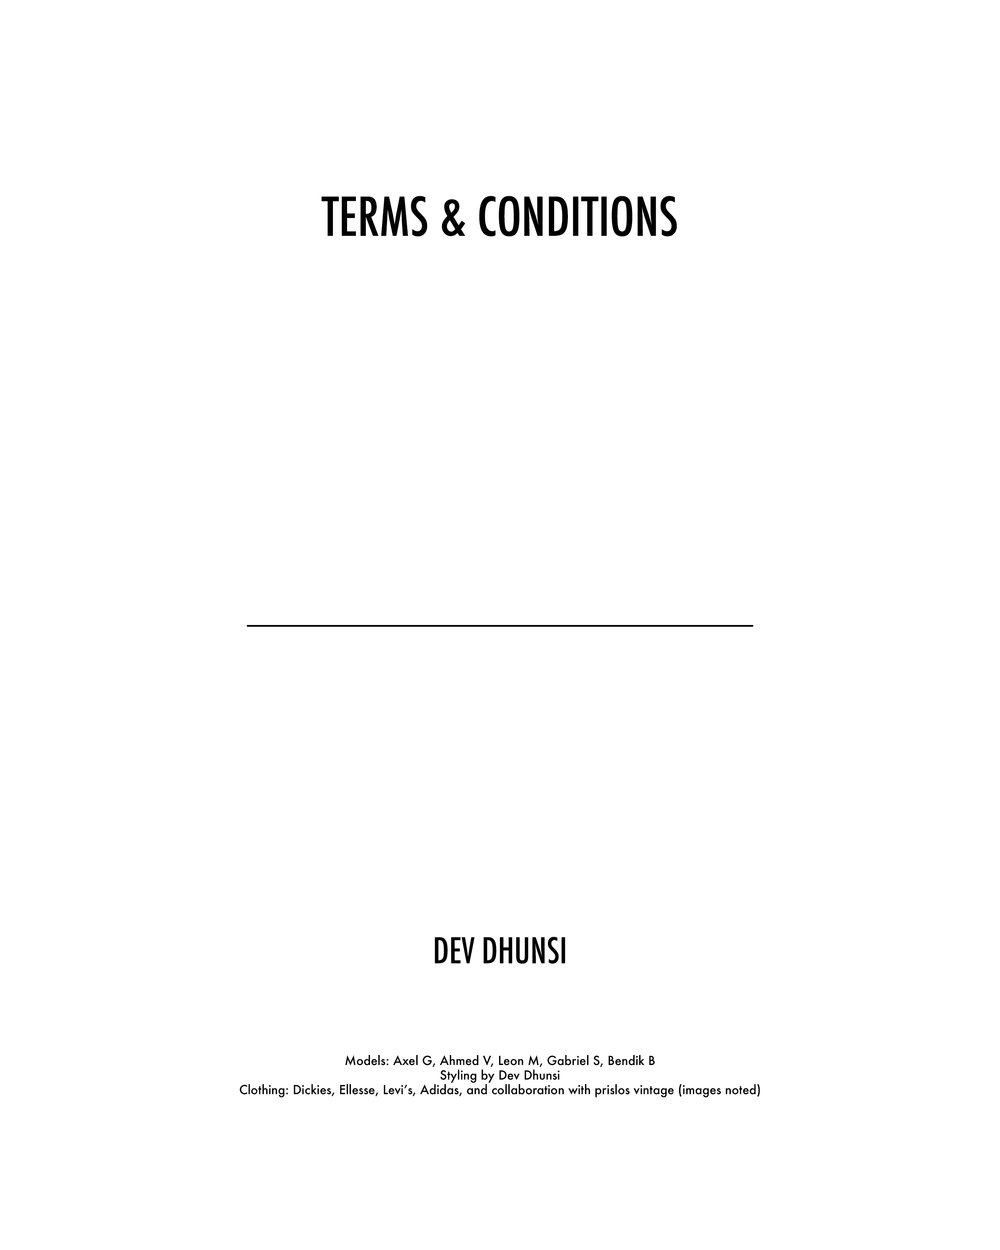 terms nd conditions.jpg